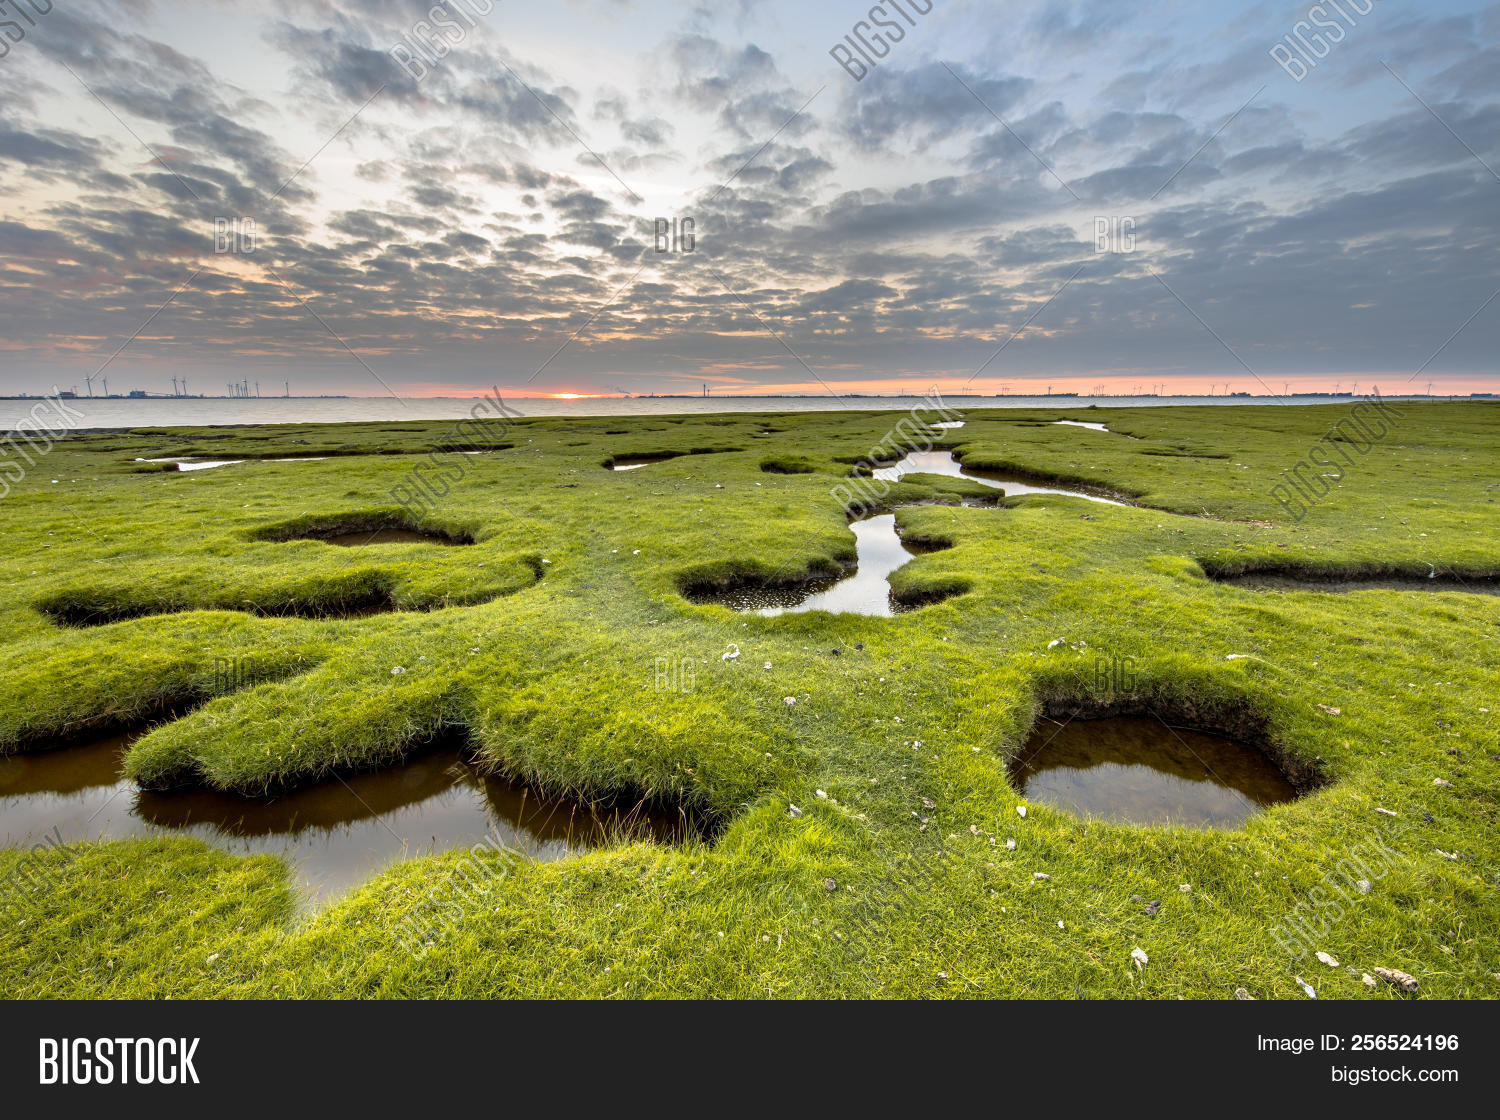 Erosion holes in the tidal marsh grassland of Dollard at the Punt van Reide in the Waddensea area on the Groningen coast in the Netherlands